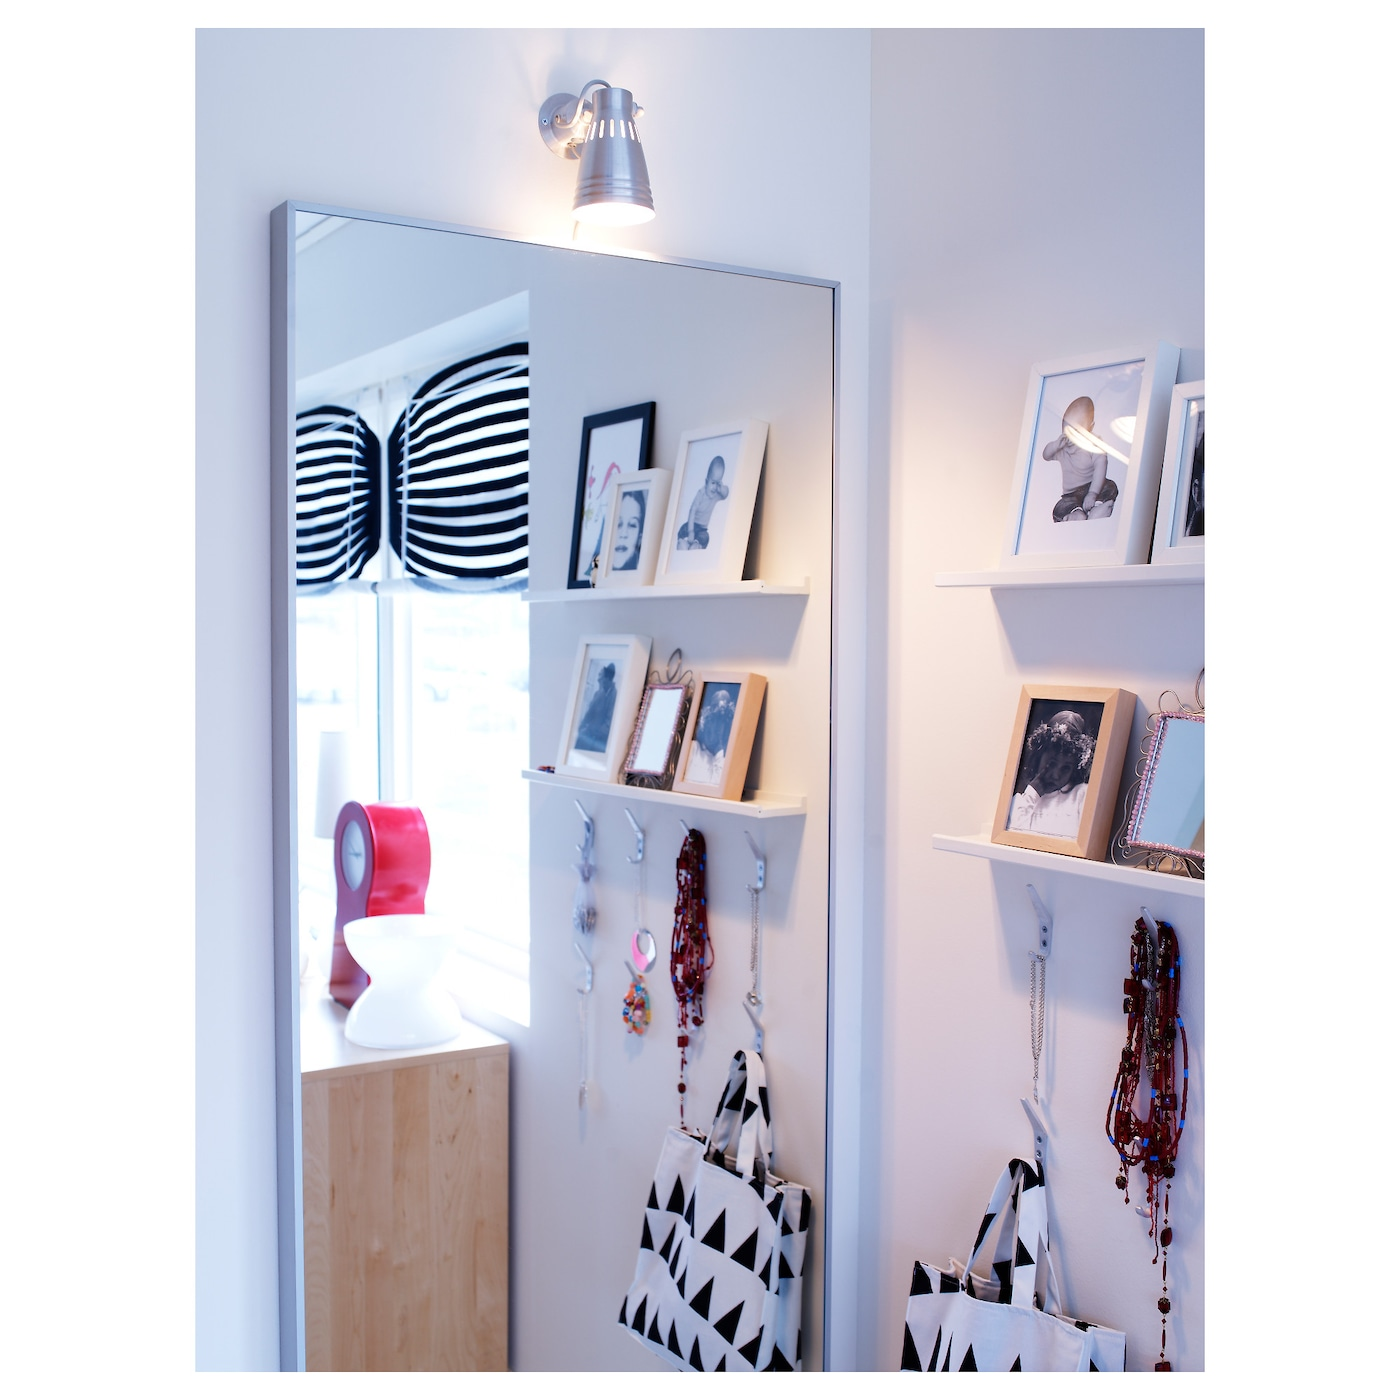 Hovet mirror aluminium 78x196 cm ikea ikea hovet mirror can be hung horizontally or vertically amipublicfo Gallery